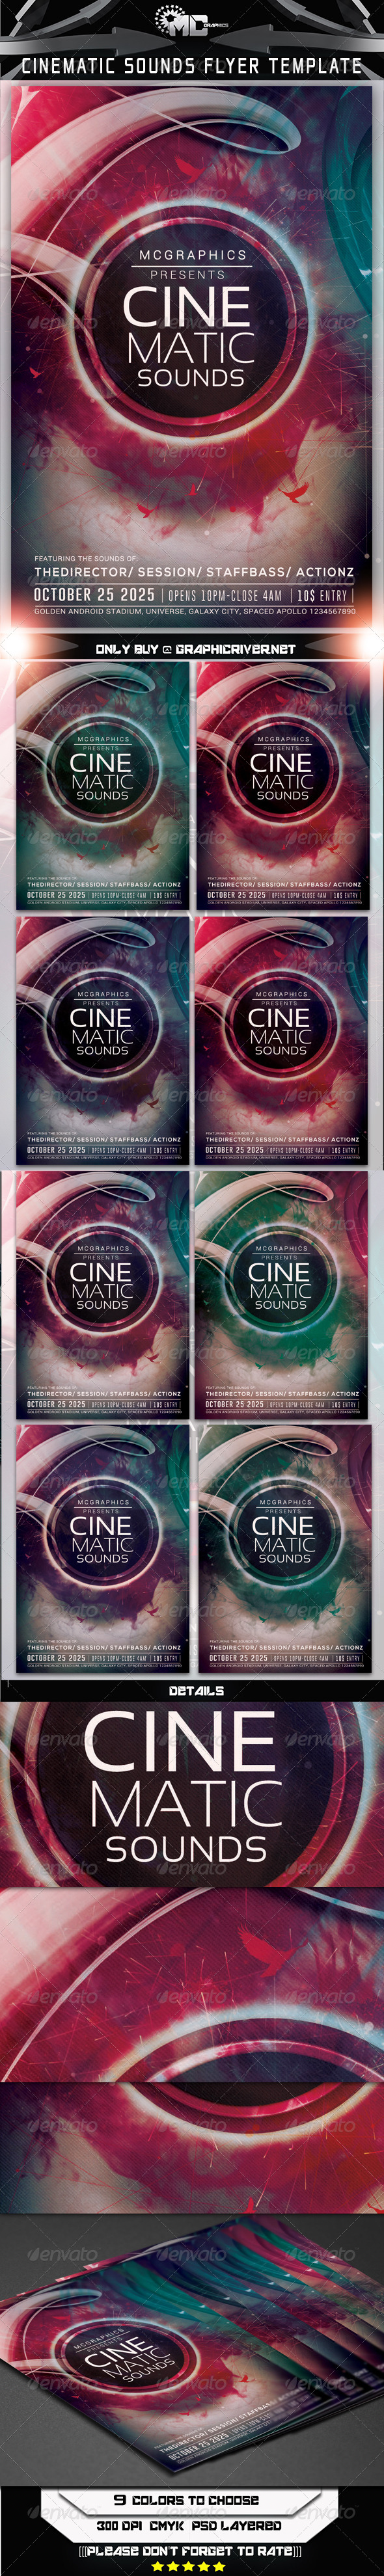 GraphicRiver Cinematic Sounds Flyer Template 7911152